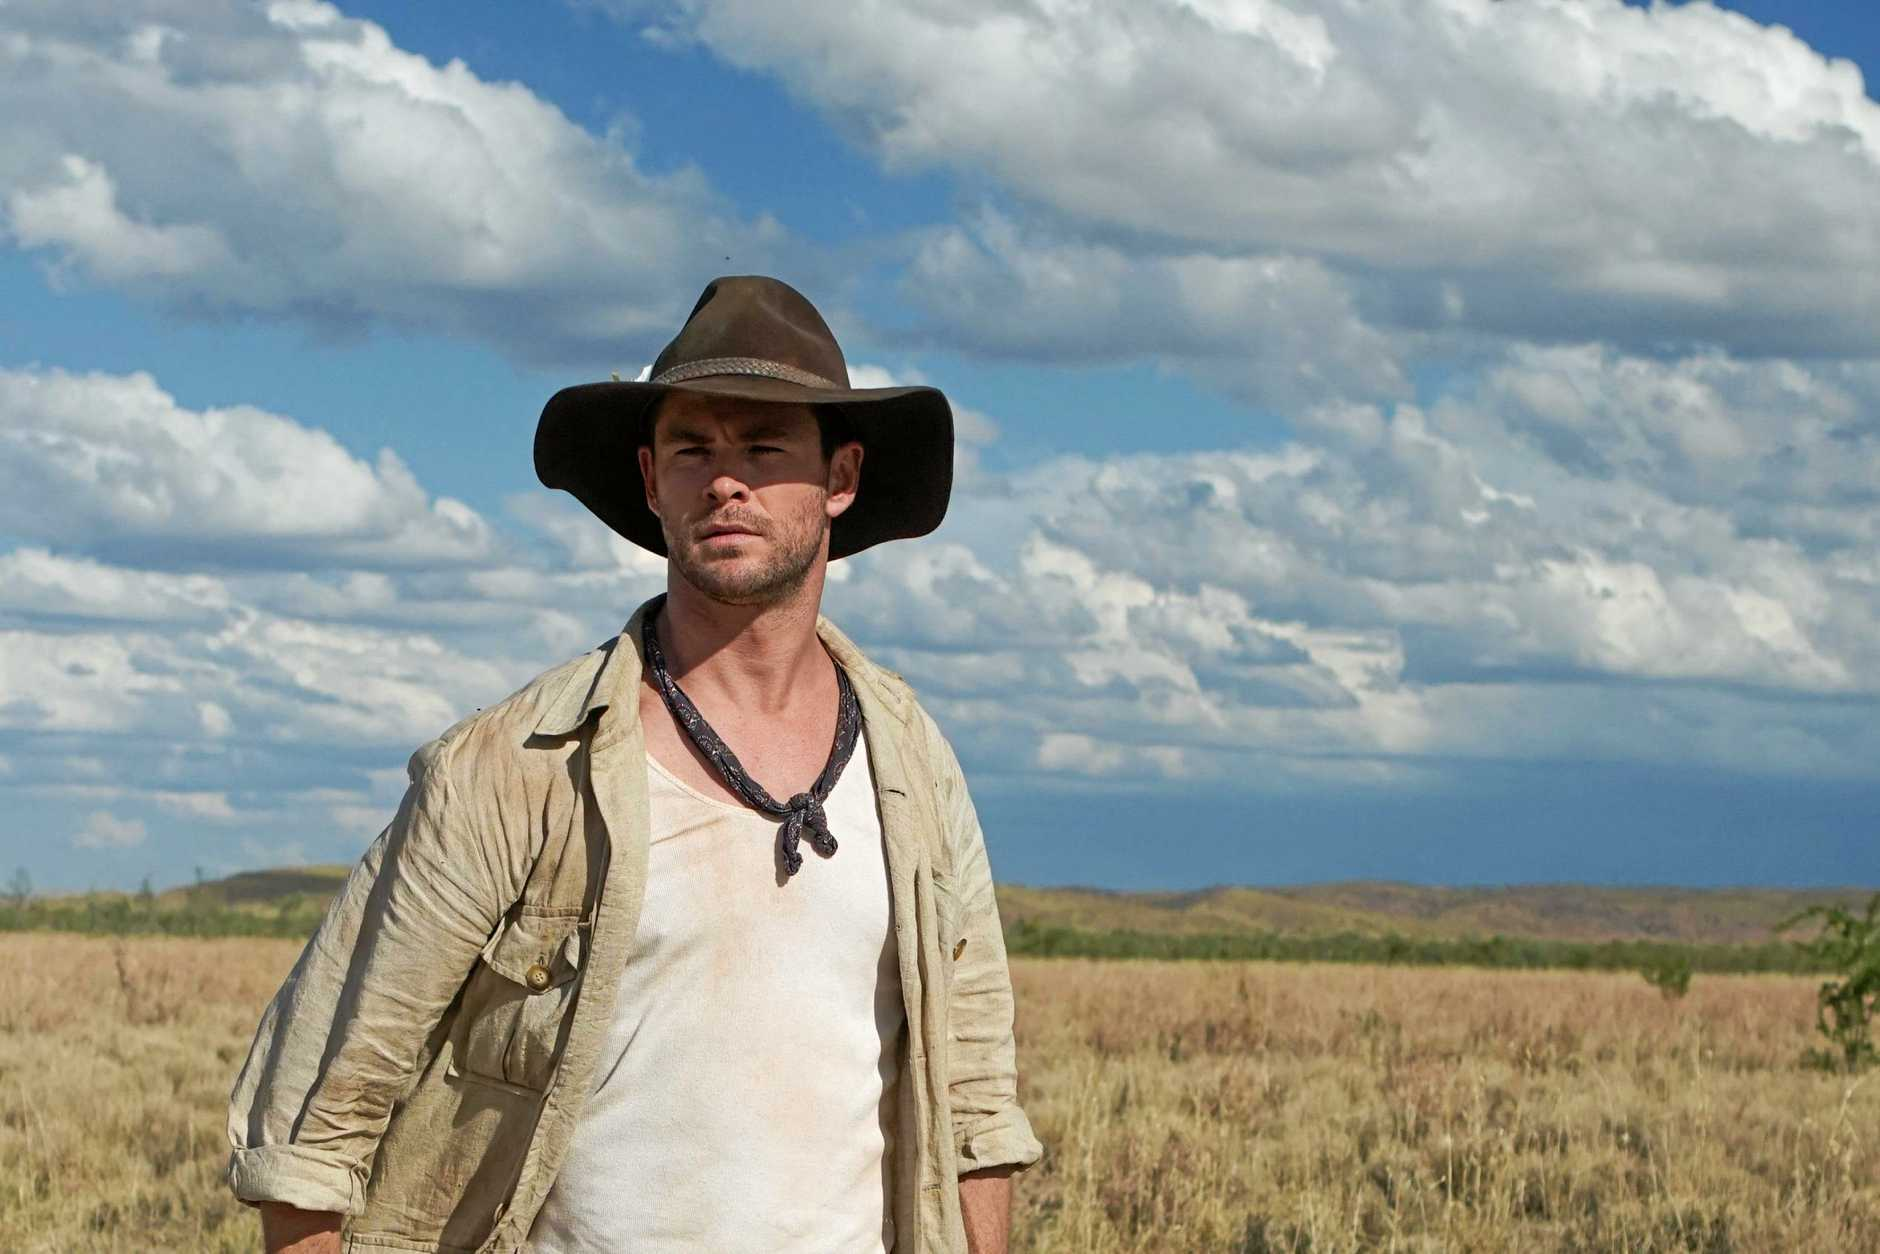 Chris Hemsworth starred in a spoof Crocodile Dundee film trailer for Tourism Australia.